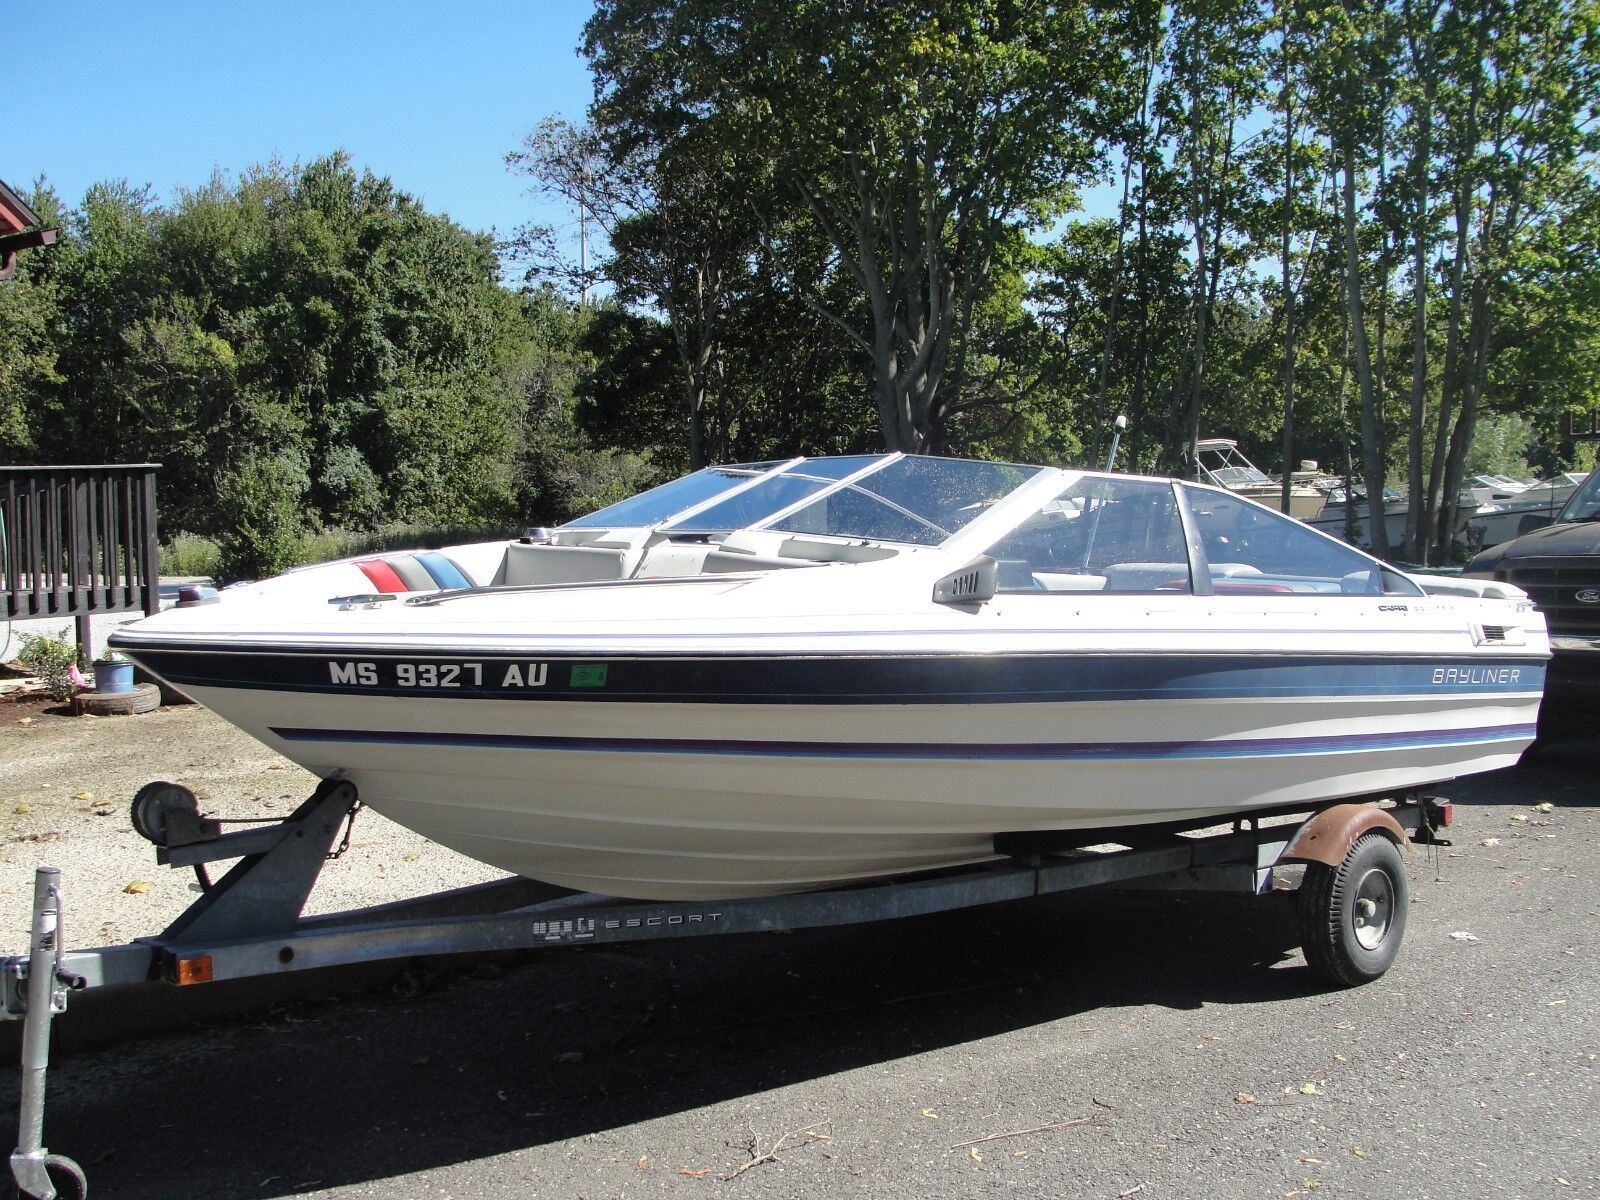 1987 Bayliner Capri Bowrider Wiring Diagram 17 With 23l Omc Cobra Freshwater Used Only 1 Owner